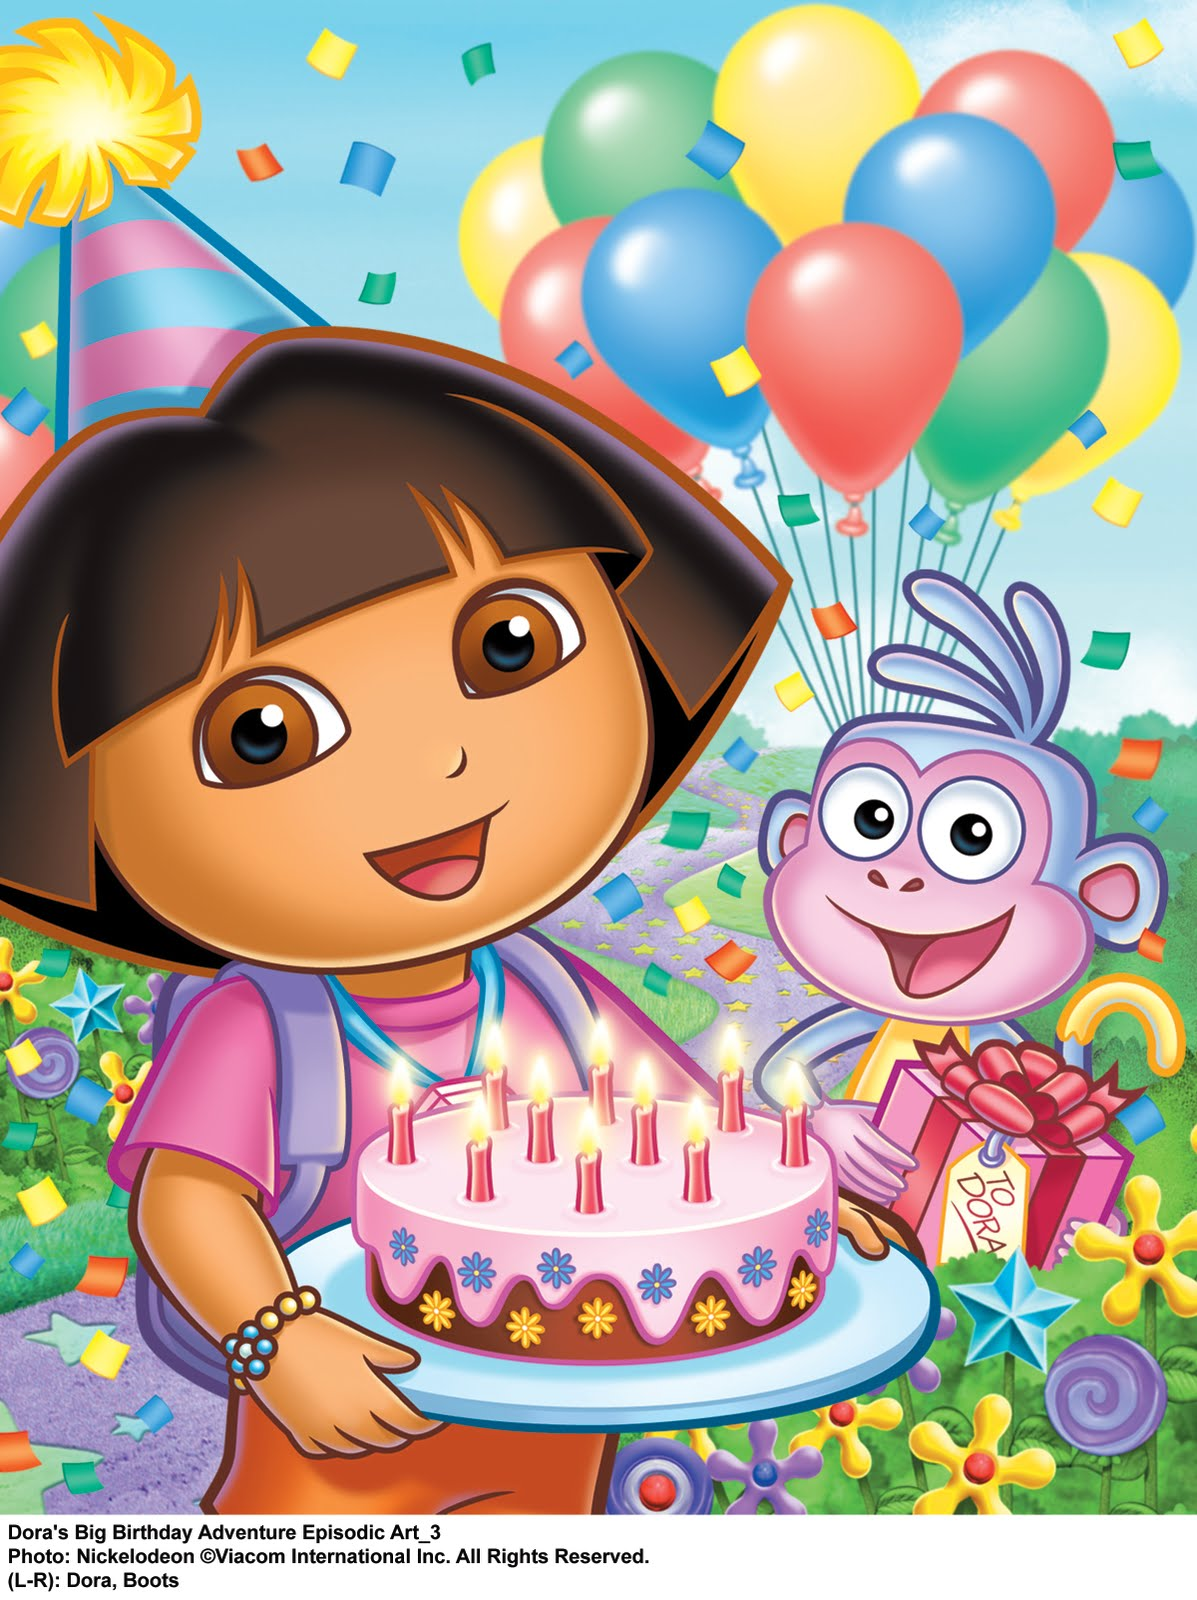 Dora the explorer turns 10 today and walmart wants you to celebrate